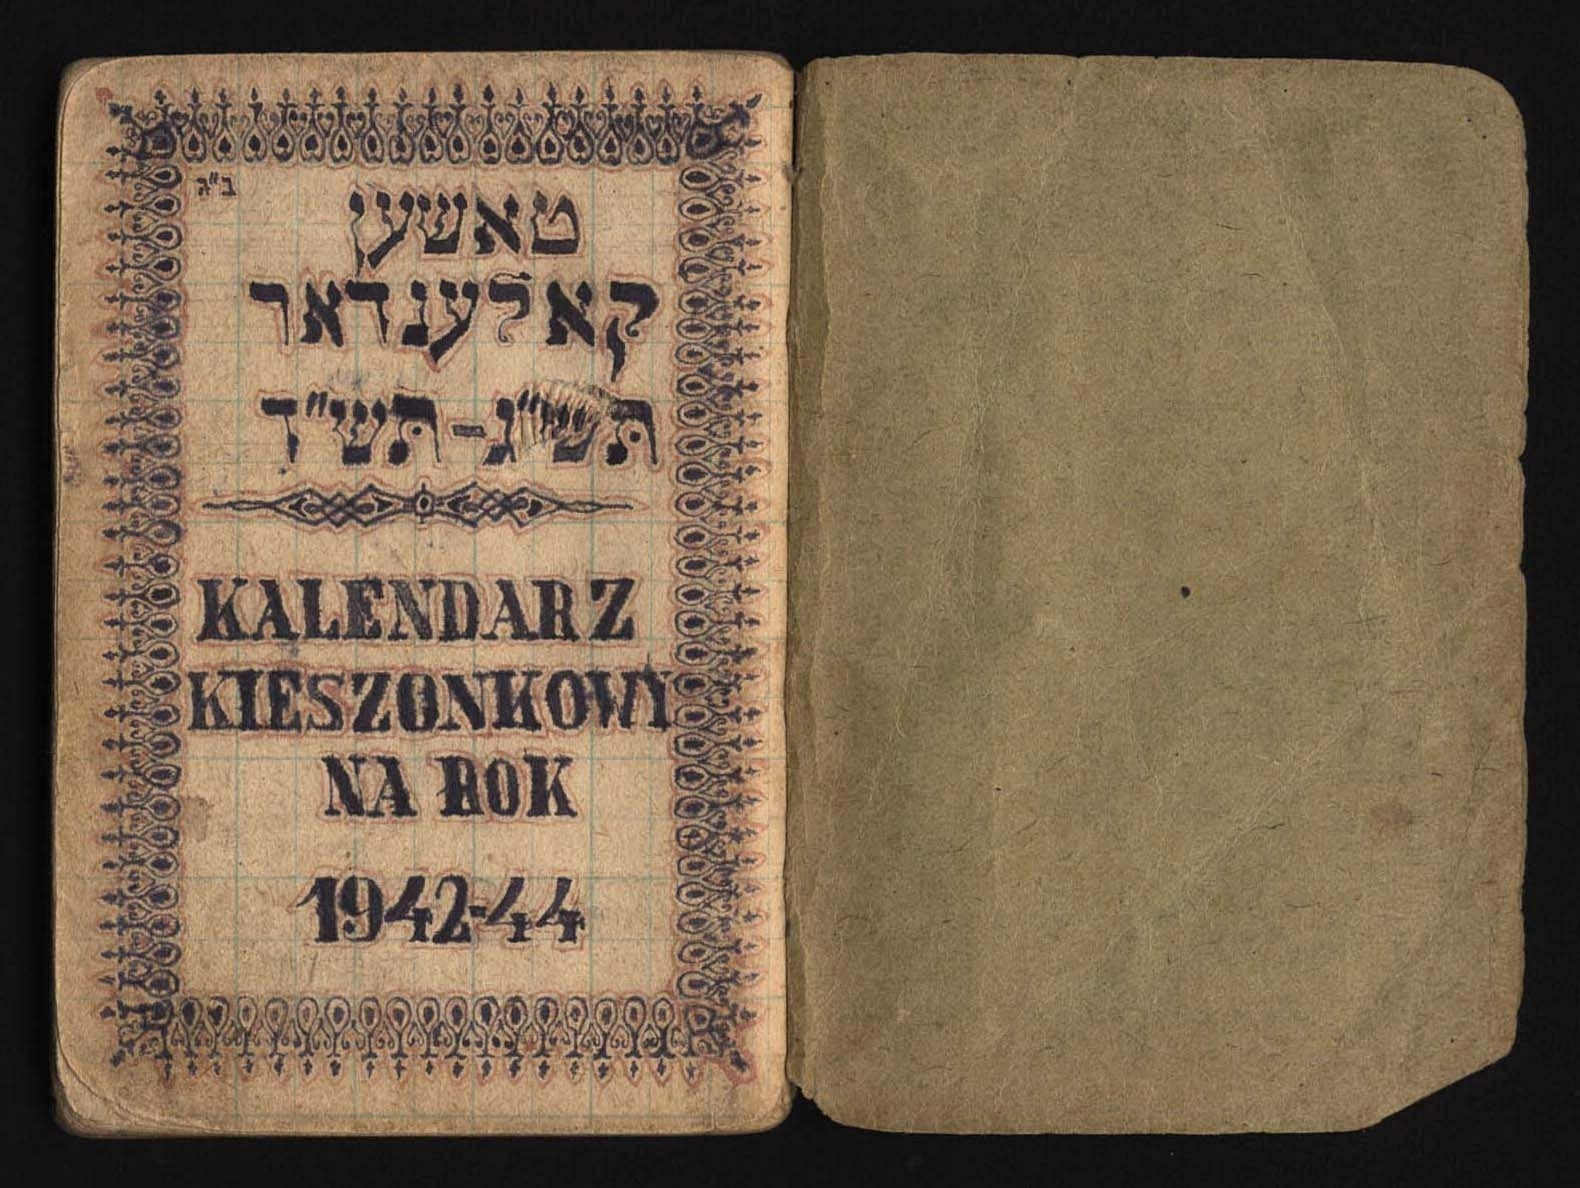 <p>Title page of Rabbi Shlomo Yosef Scheiner's calendar for the Jewish year 5703, created while he was in hiding in wartime Poland in1943.</p>